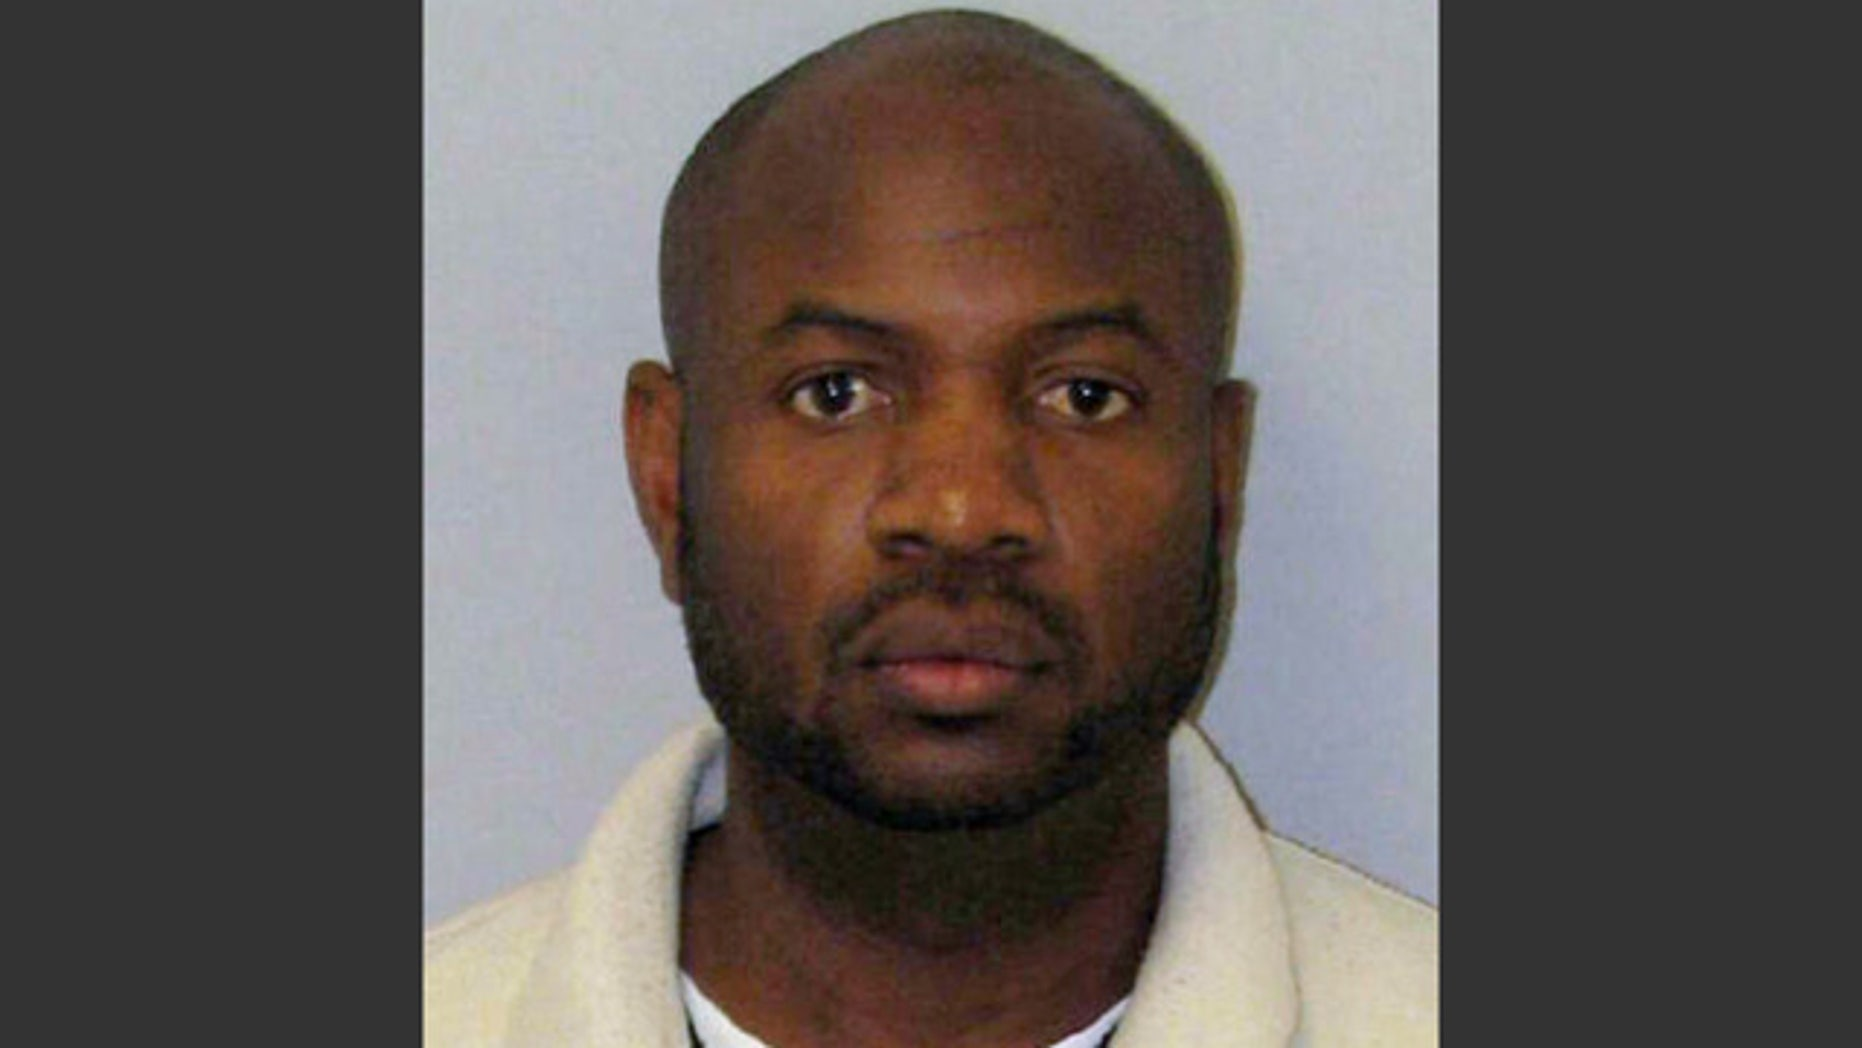 This photo provided by the New Jersey State Police shows Kevin Roper. Roper, a Wal-Mart truck driver from Georgia, was charged with death by auto and four counts of assault by auto in the wake of a deadly chain-reaction crash on the New Jersey Turnpike early Saturday, June 7, 2014, that left actor-comedian Tracy Morgan and two others critically injured and another man dead. (AP Photo/New Jersey State Police)